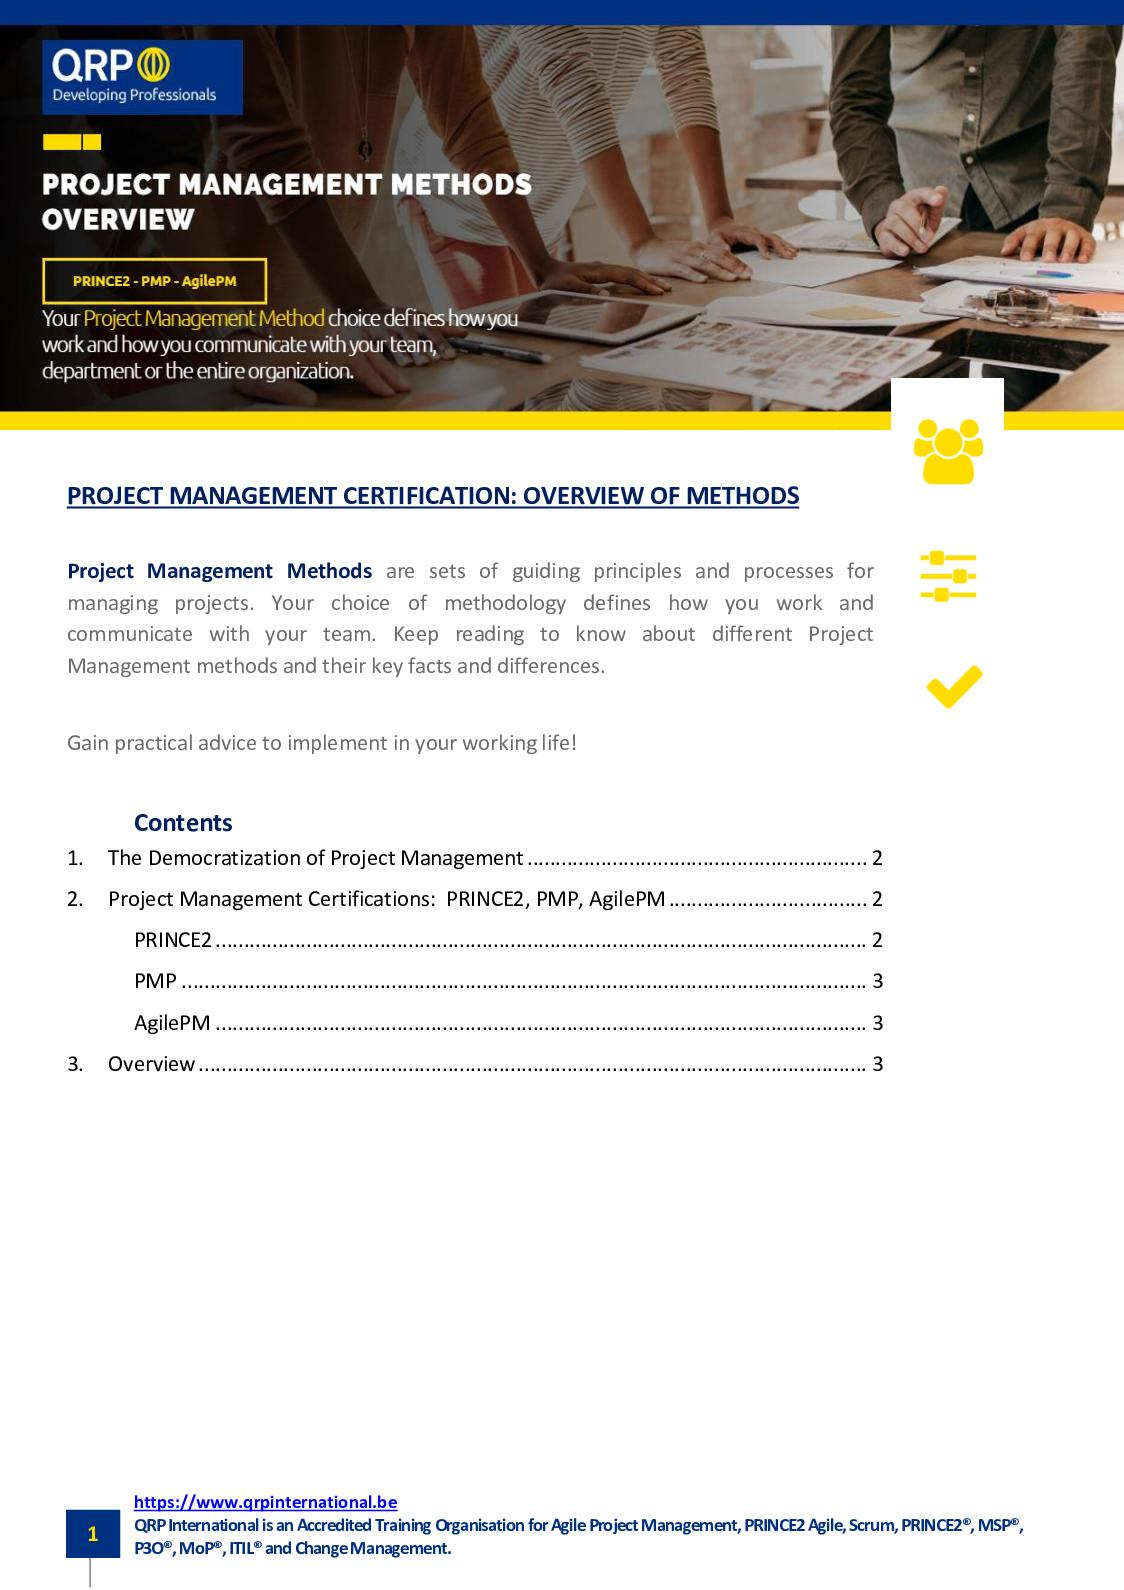 Agile Scrum Project Management Certification calaméo - overview of 3 project management methods and